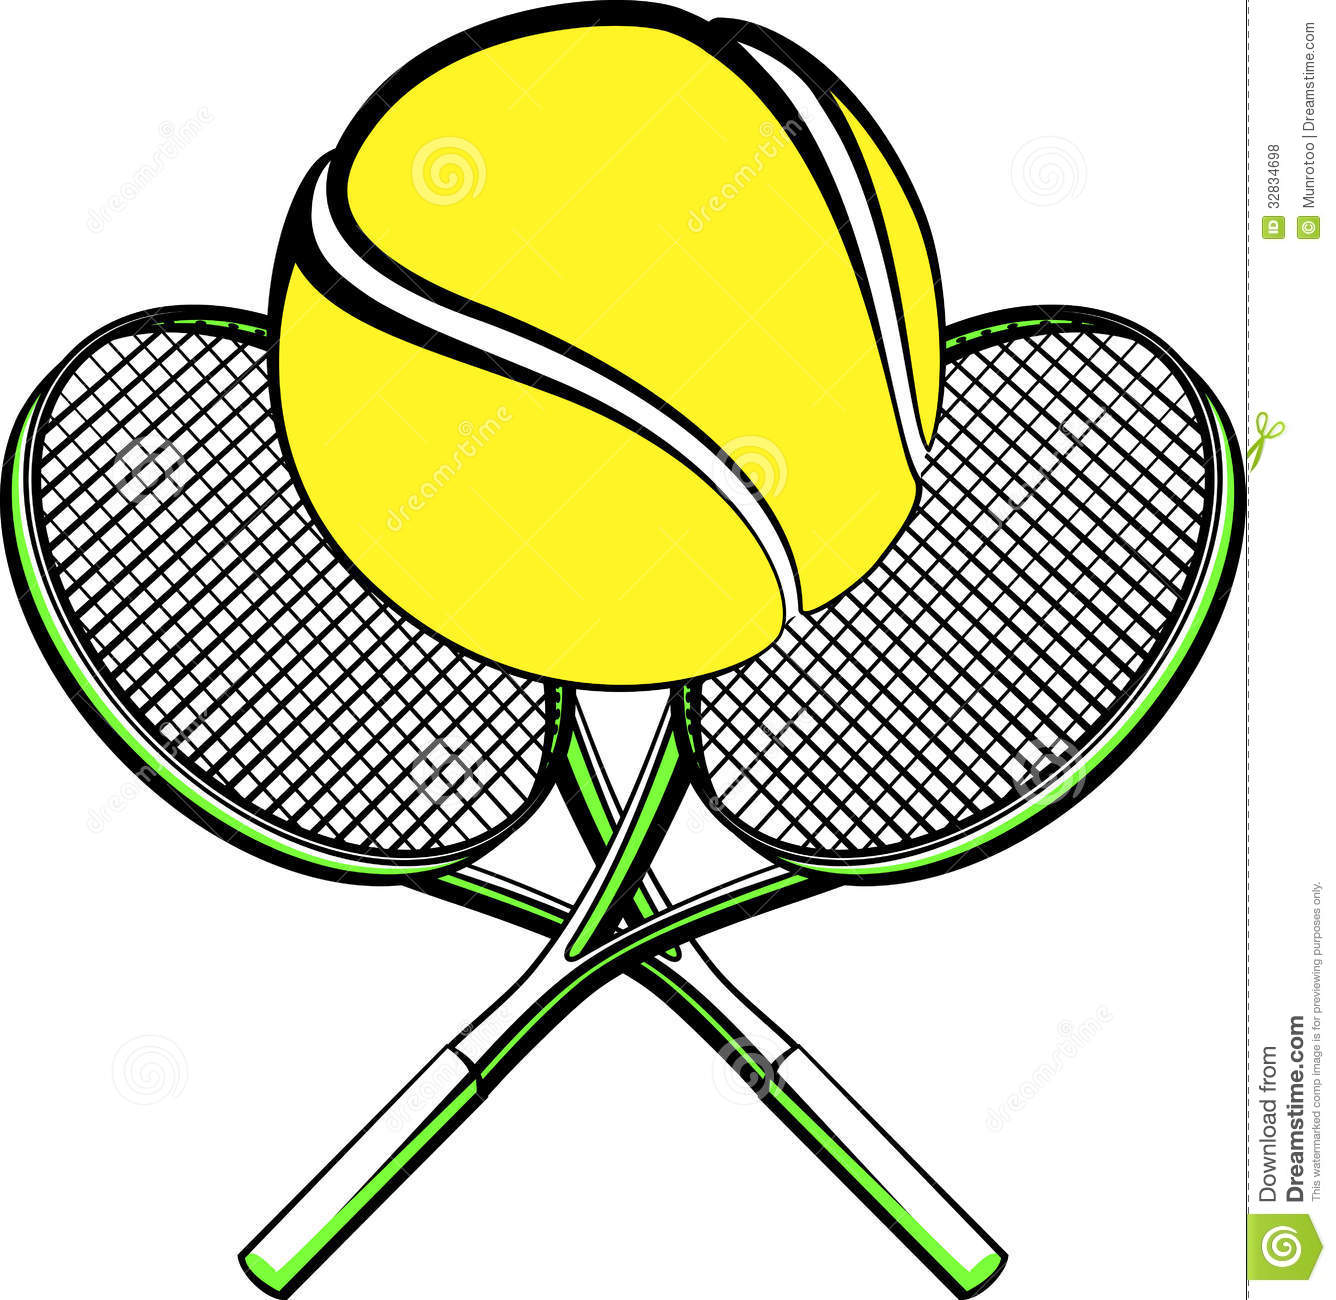 Tennis Ball With Crossed Rackets Royalty Free Stock Photos - Image ...